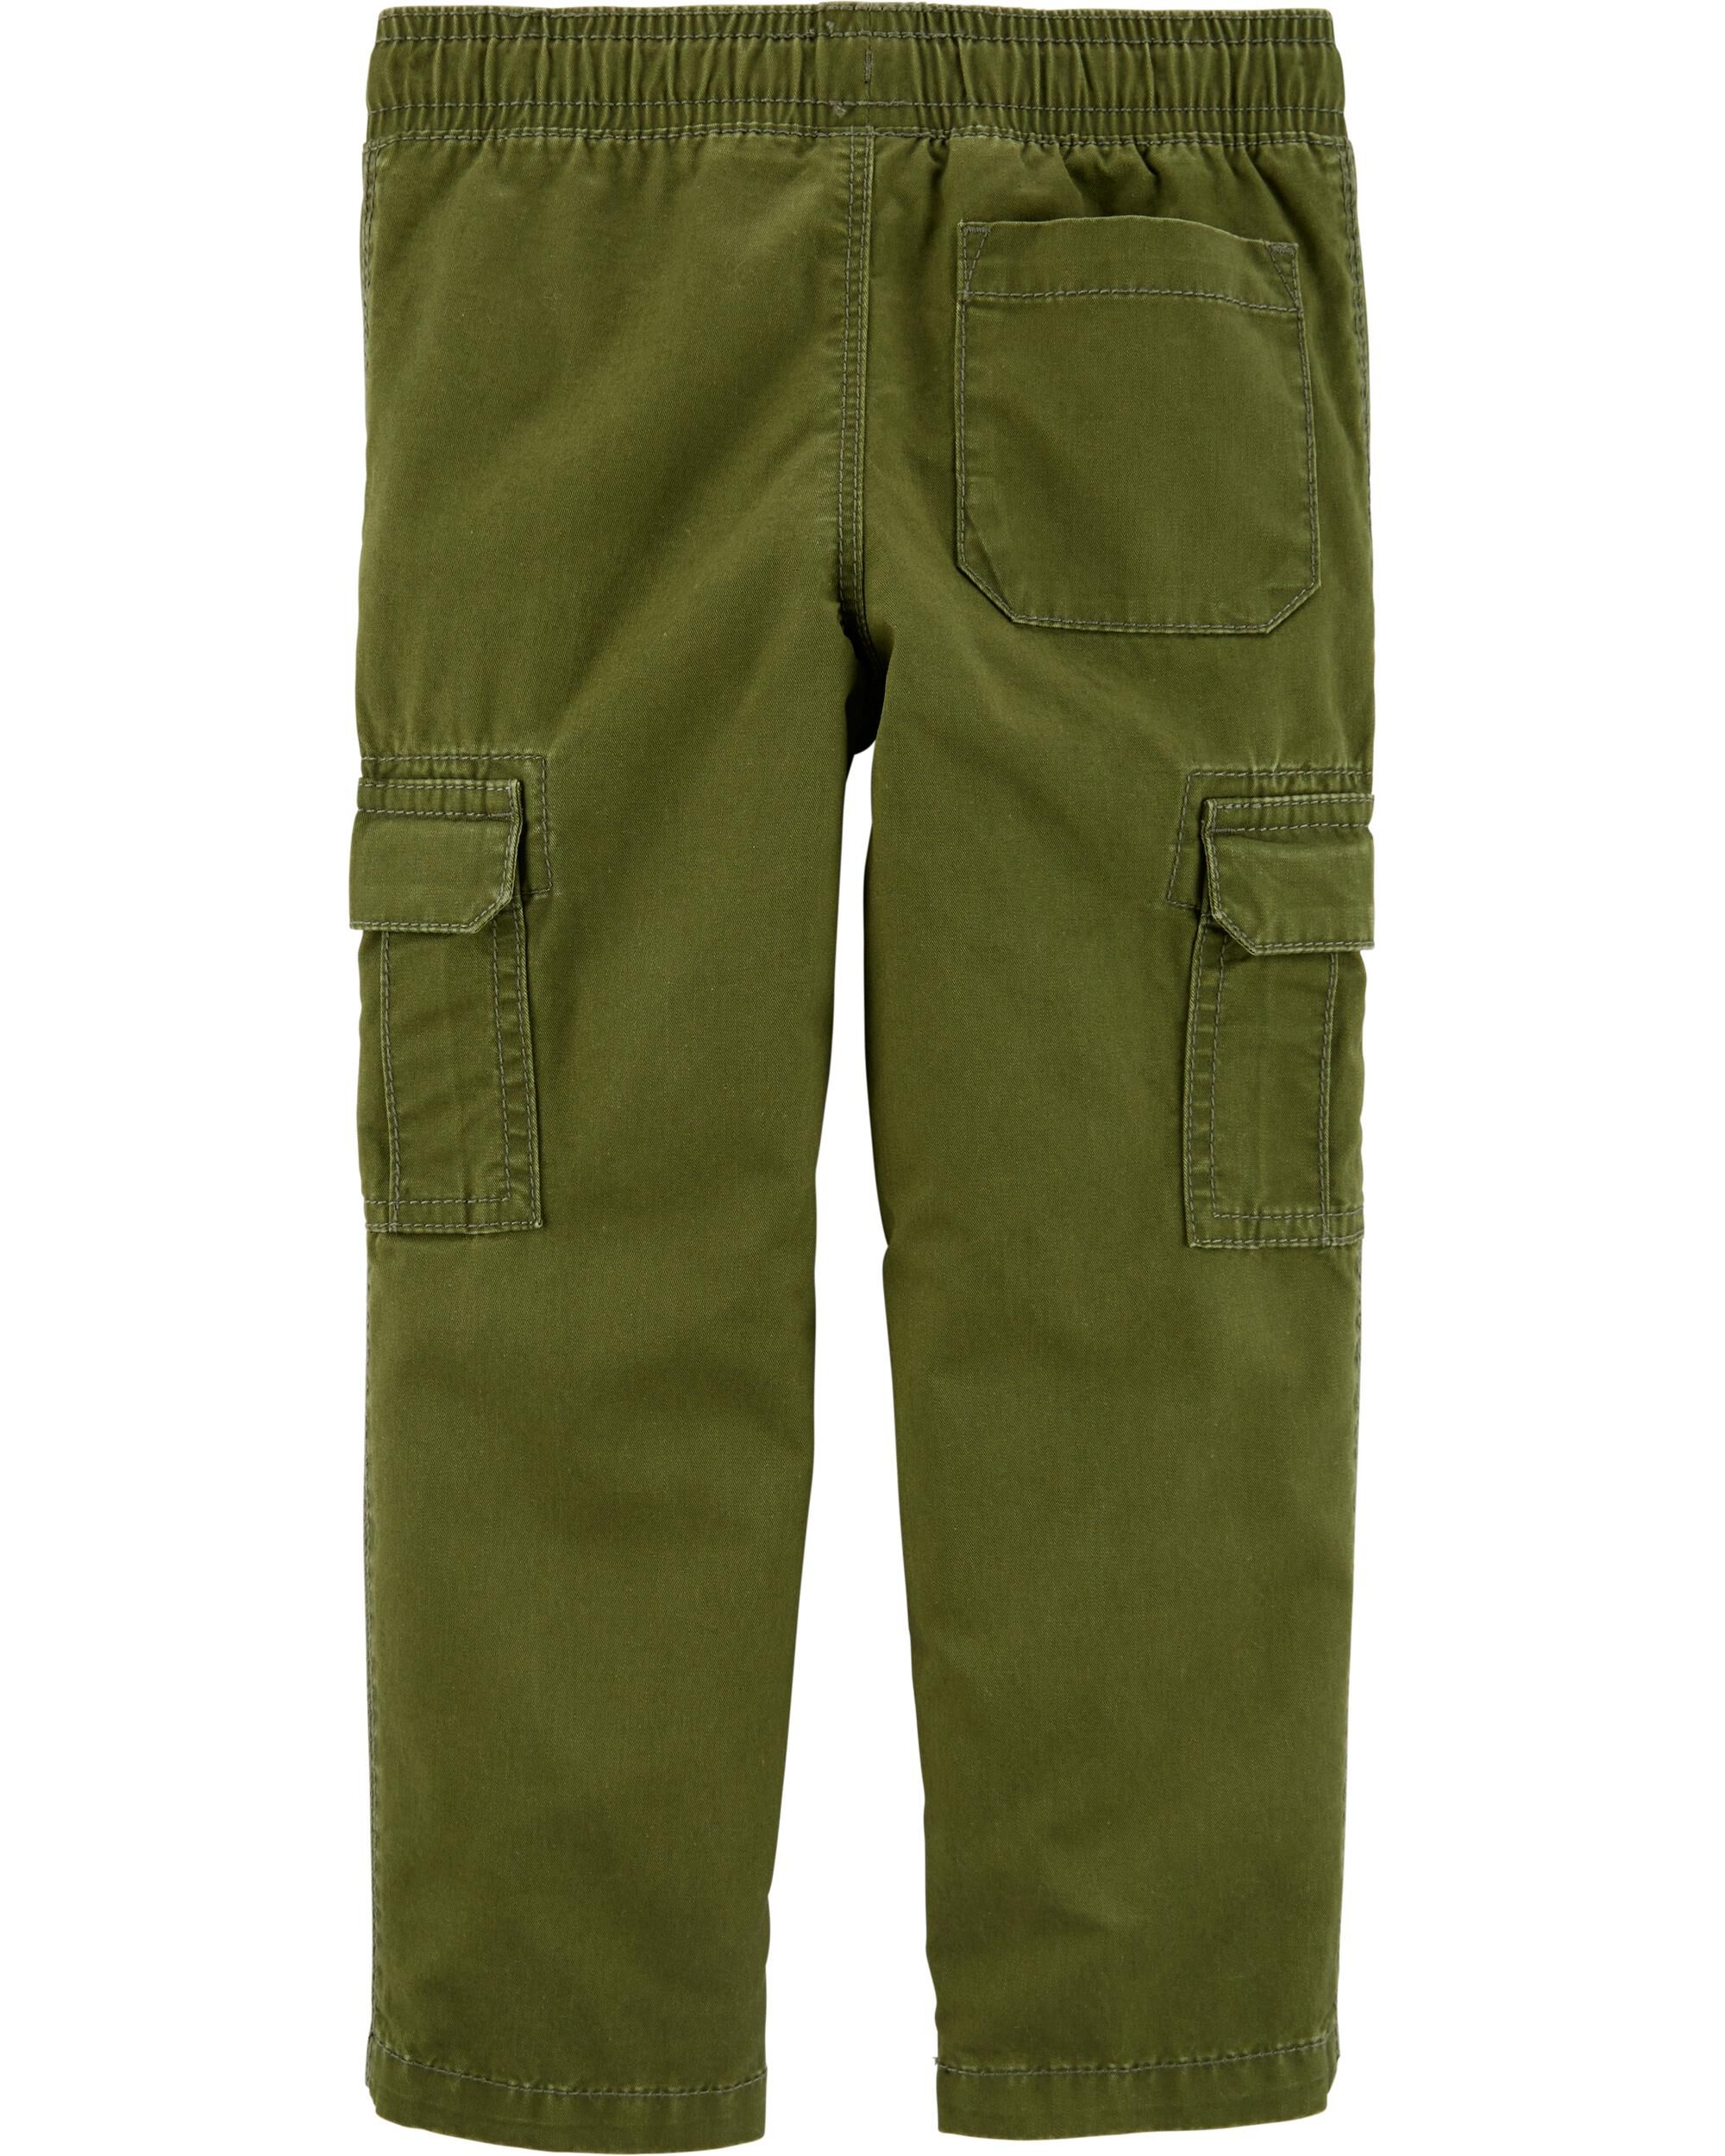 Carters Boys Green Camo Pull On Cargo Pants 6 Months